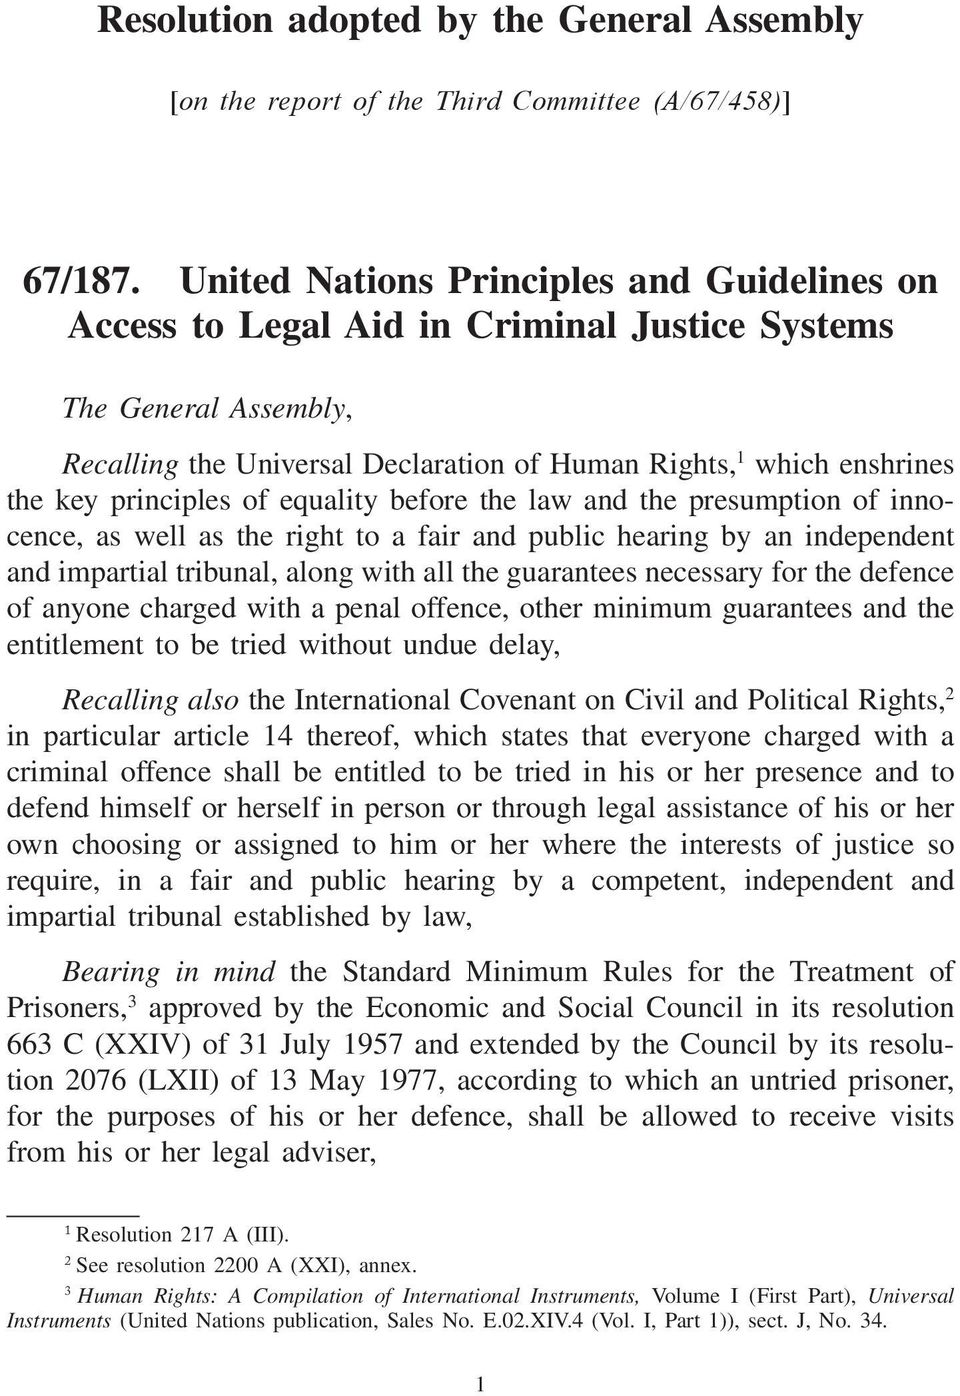 principles of equality before the law and the presumption of innocence, as well as the right to a fair and public hearing by an independent and impartial tribunal, along with all the guarantees